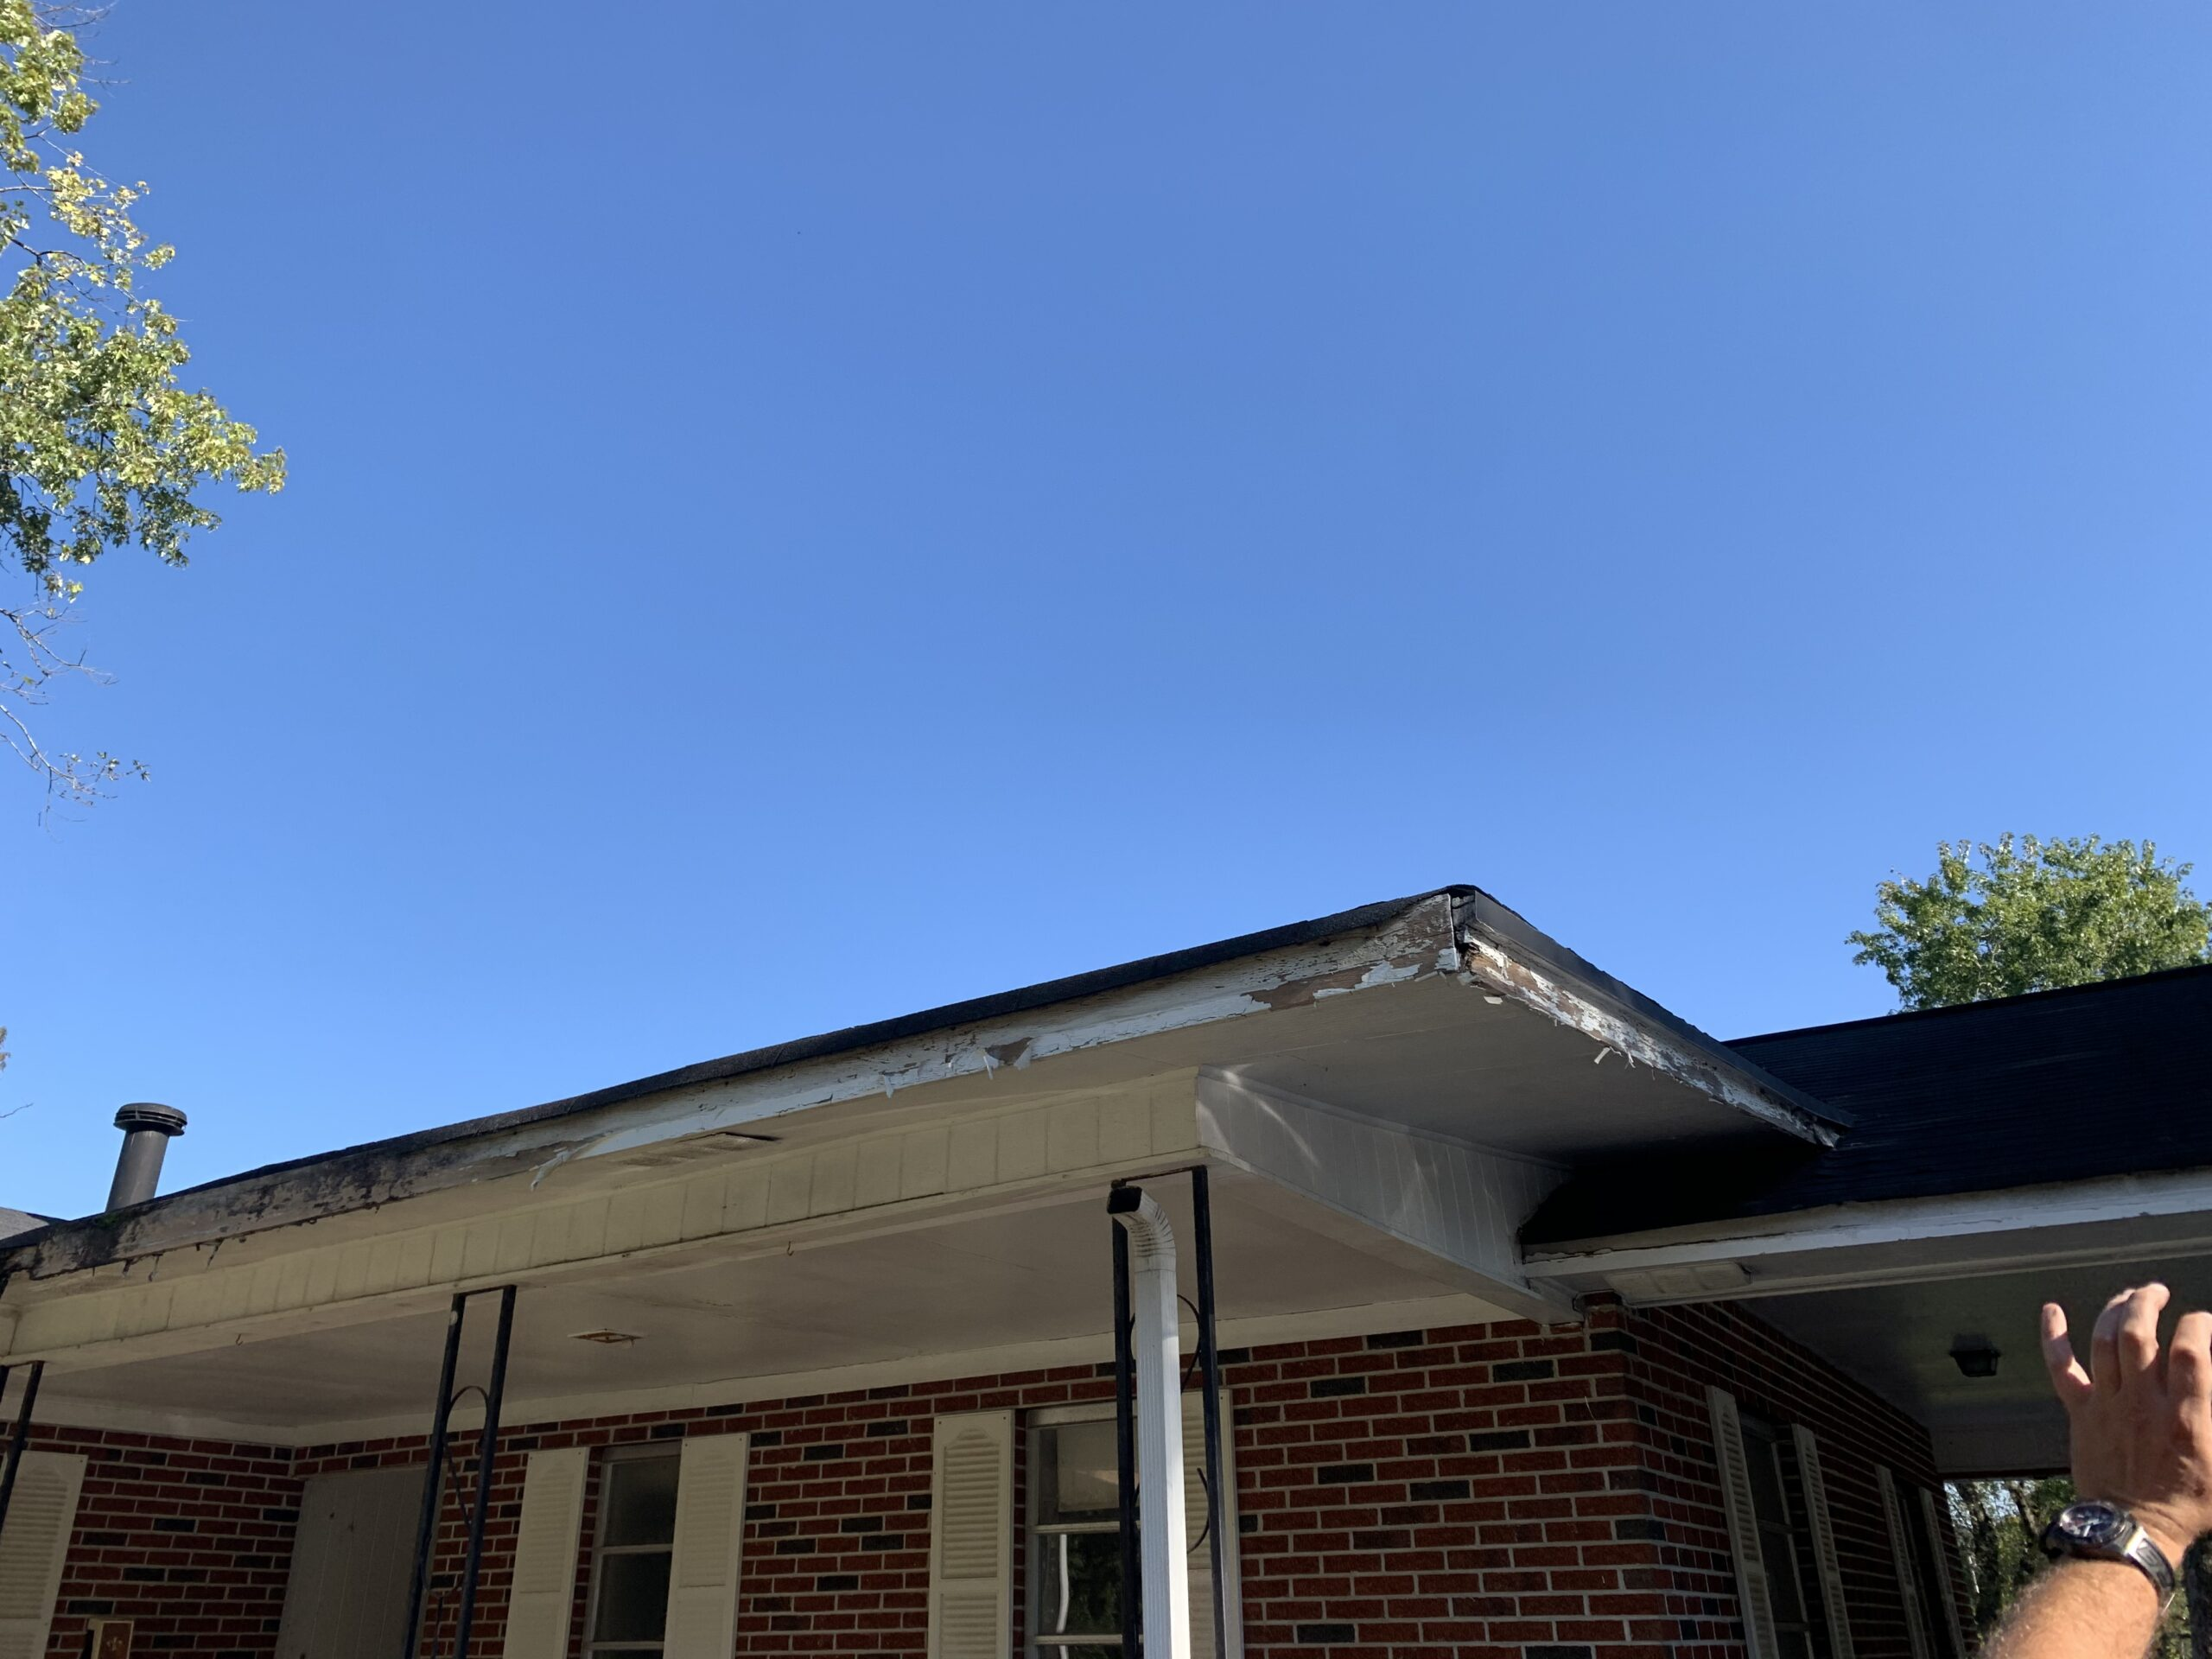 New gutters will be needed